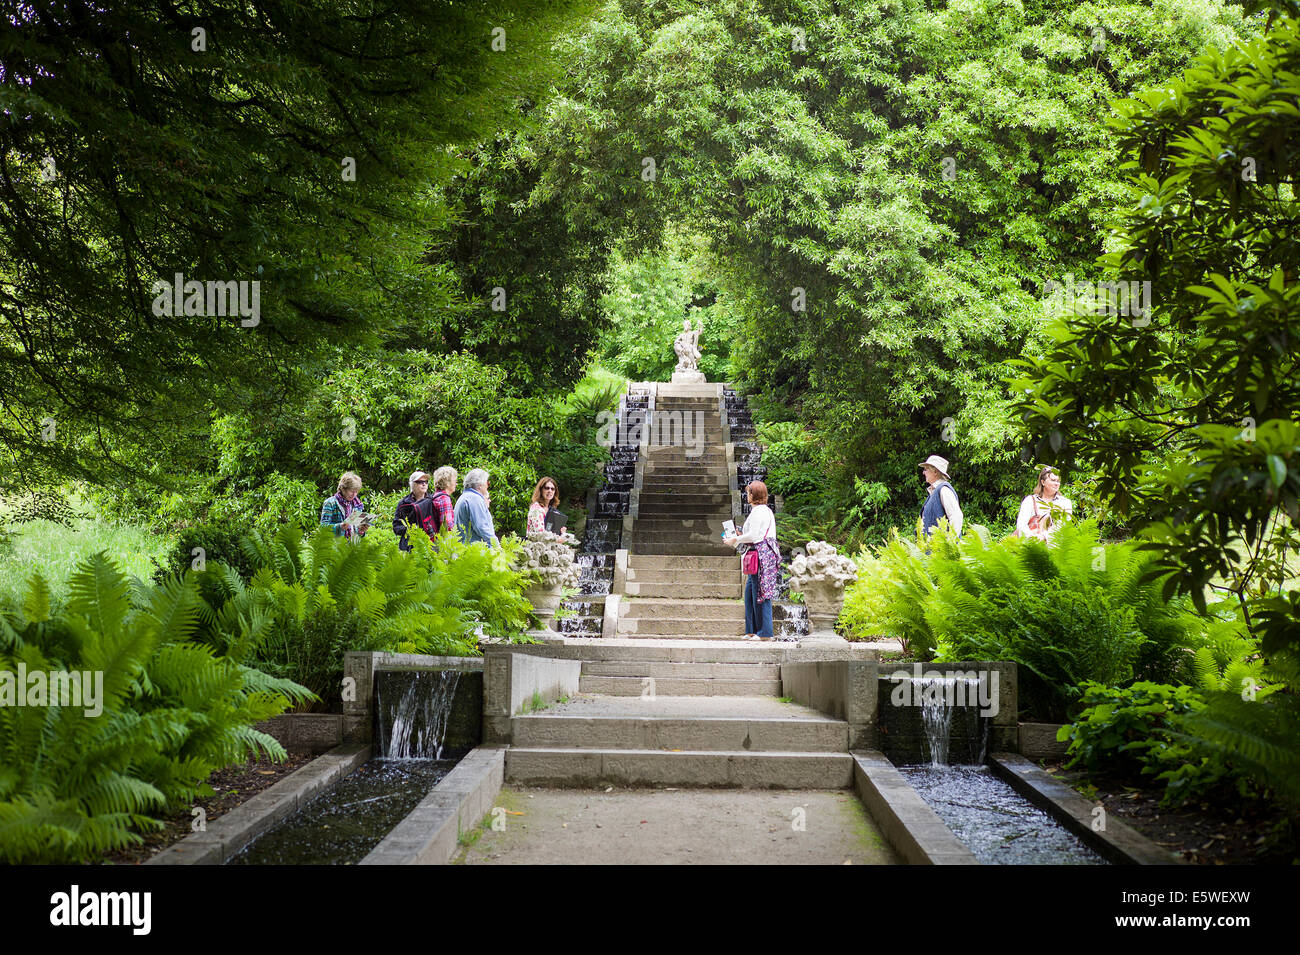 Guide with visitors to a verdant landscape garden with water rills at Holker Hall in Cumbria UK - Stock Image